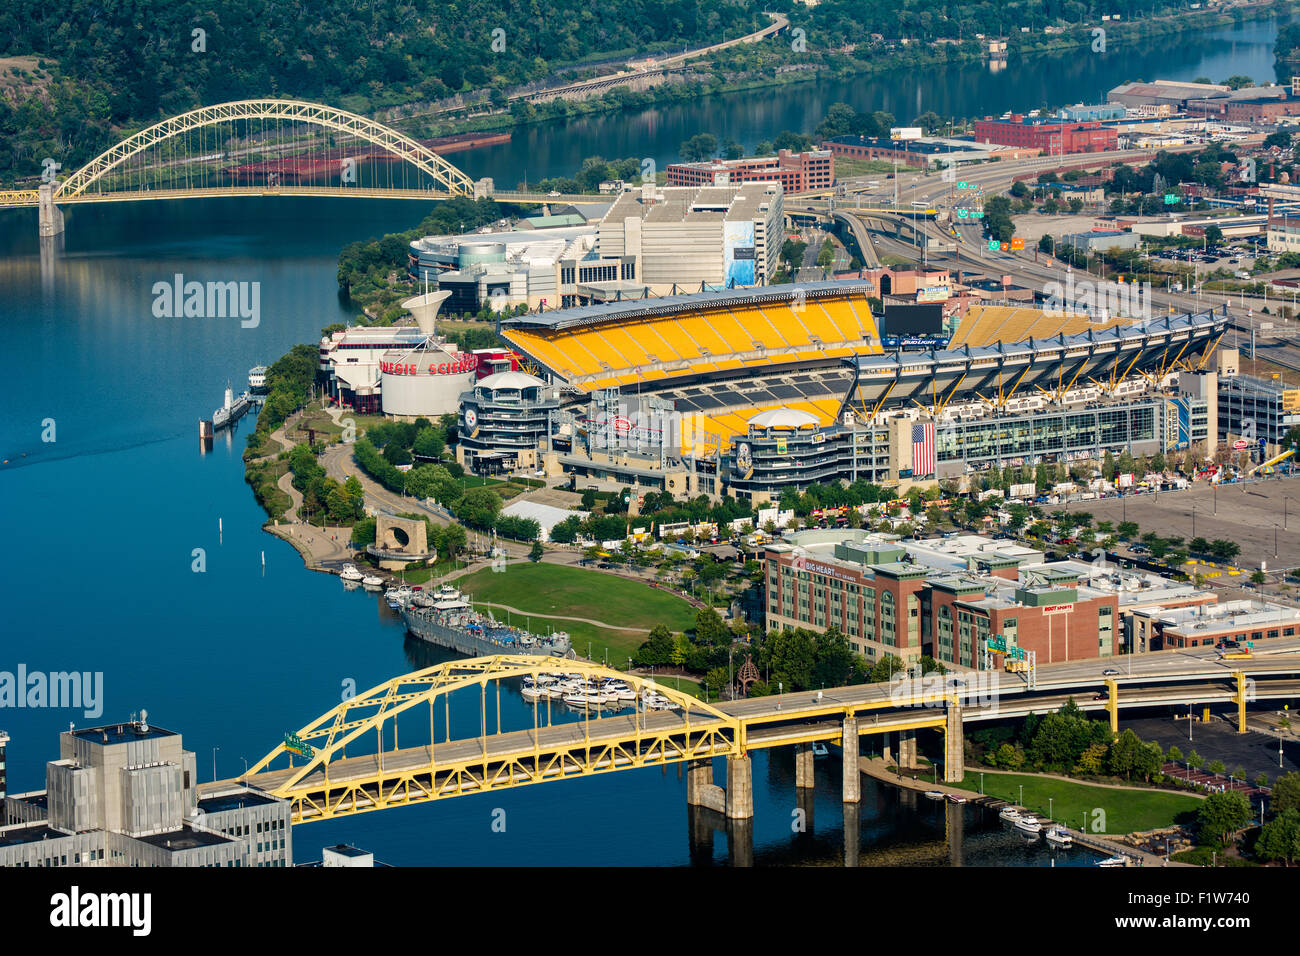 An aerial view of Heinz Field and the Fort Duquesne Bridge, and the West End Bridge - Pittsburgh, Pennsylvania. - Stock Image